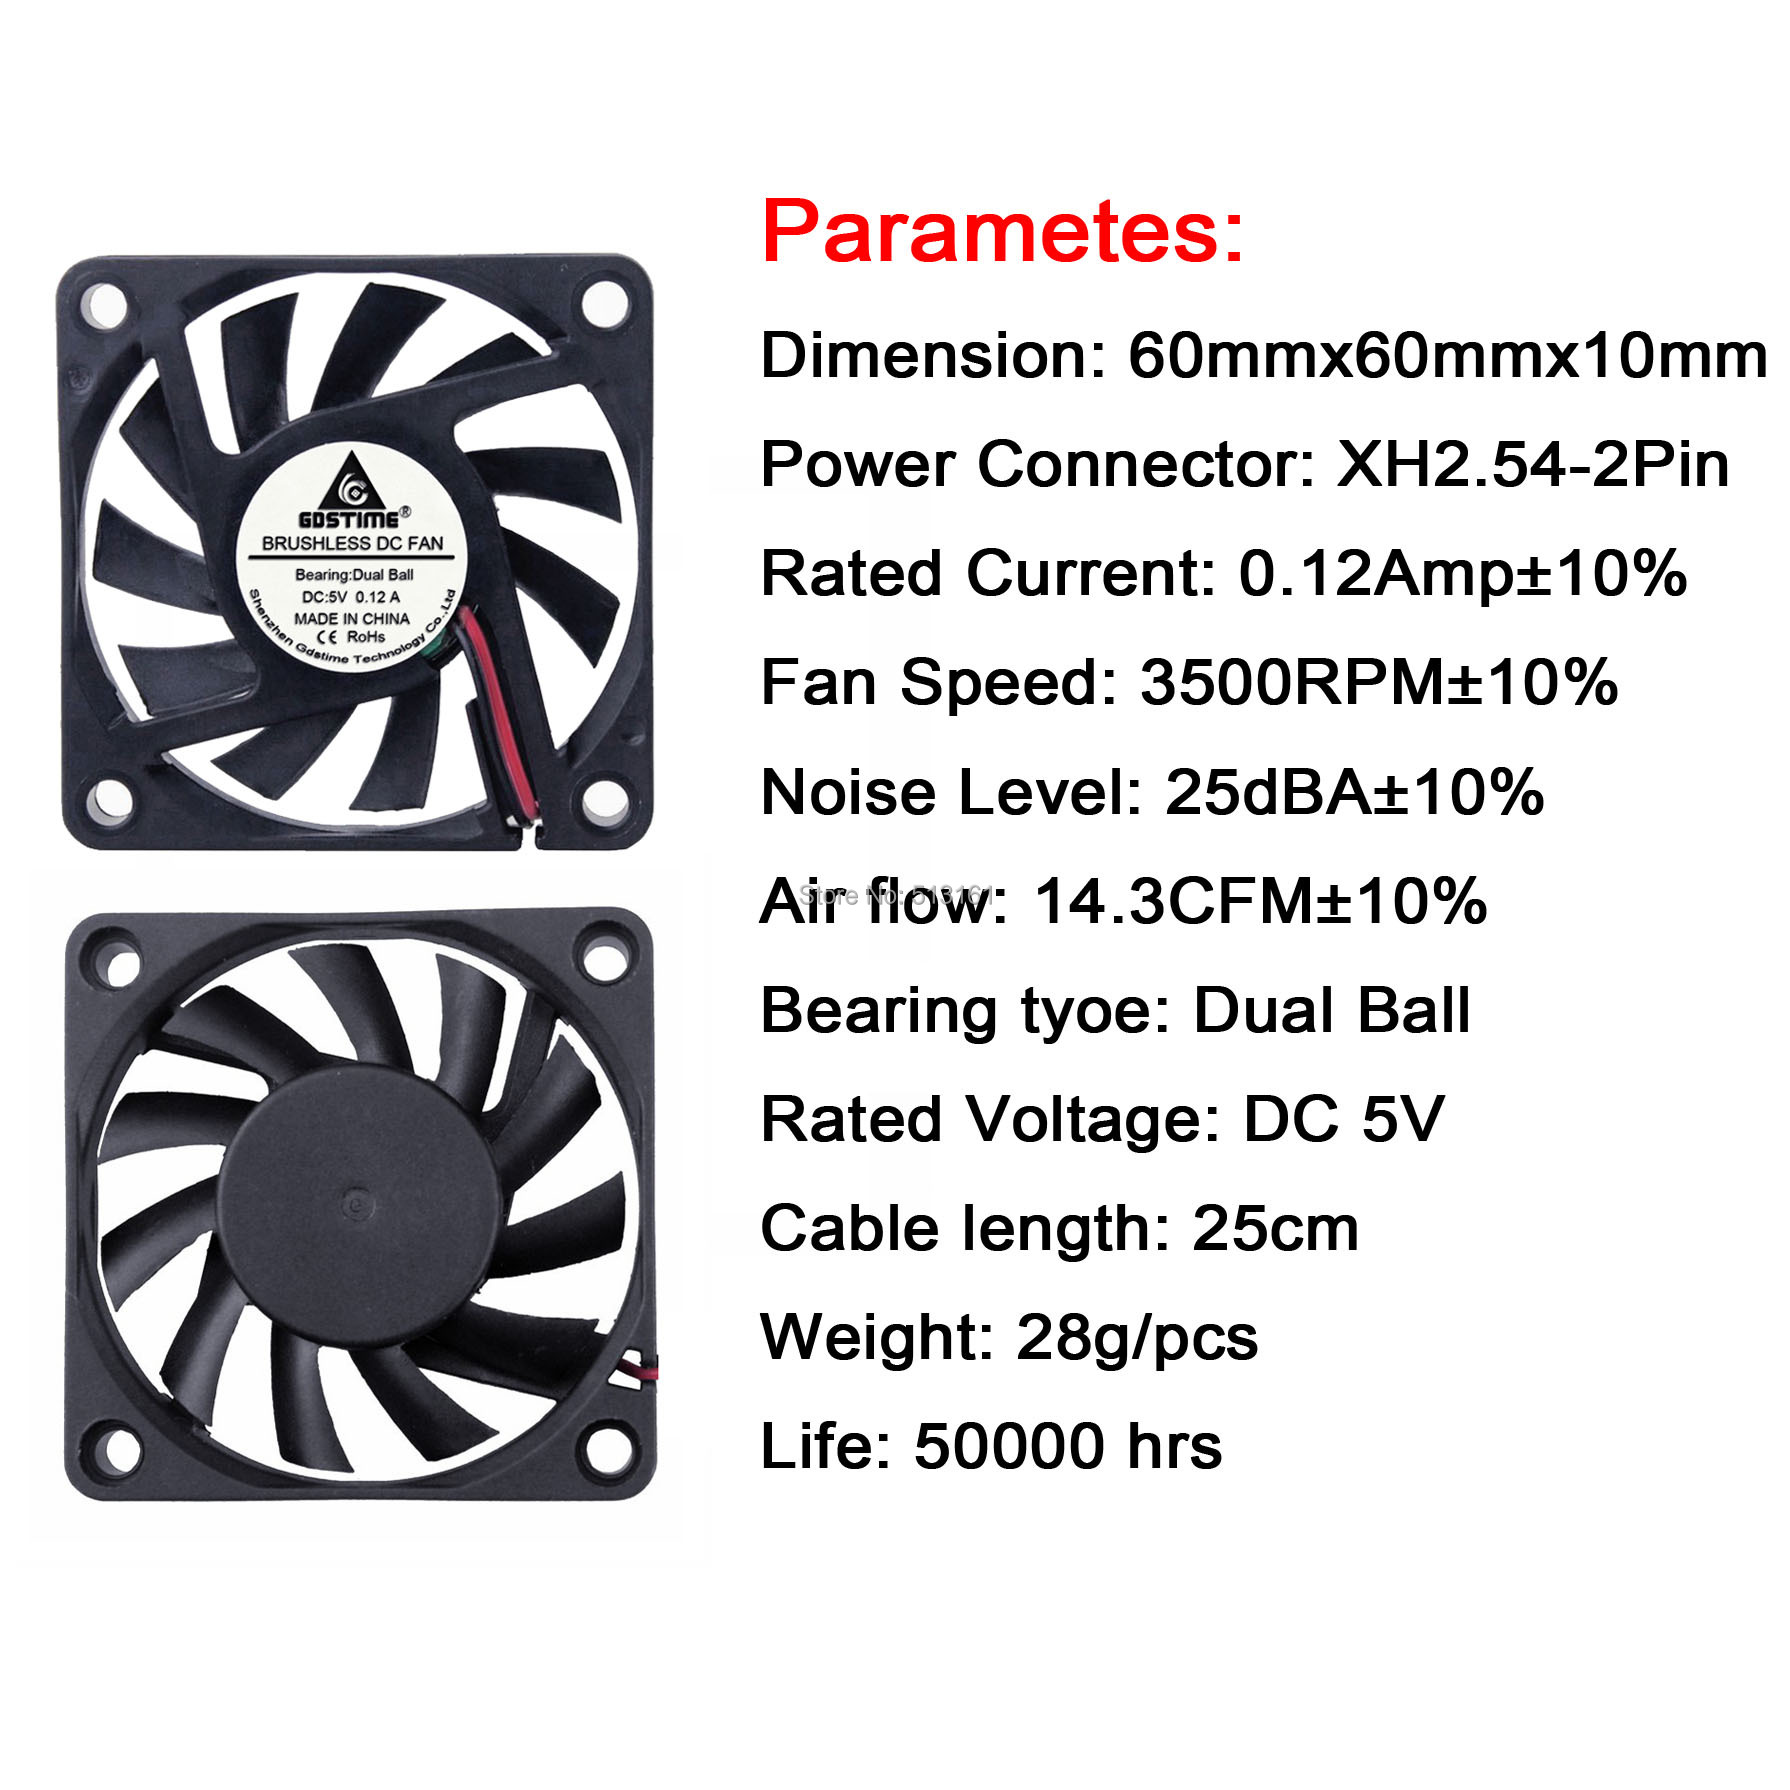 10pcs Gdstime 5V 60mm Dual Ball Fan 60mm x 10mm DC Brushless Cooling Cooler Fan for Industry PC CPU Computer Case in Fans Cooling from Computer Office